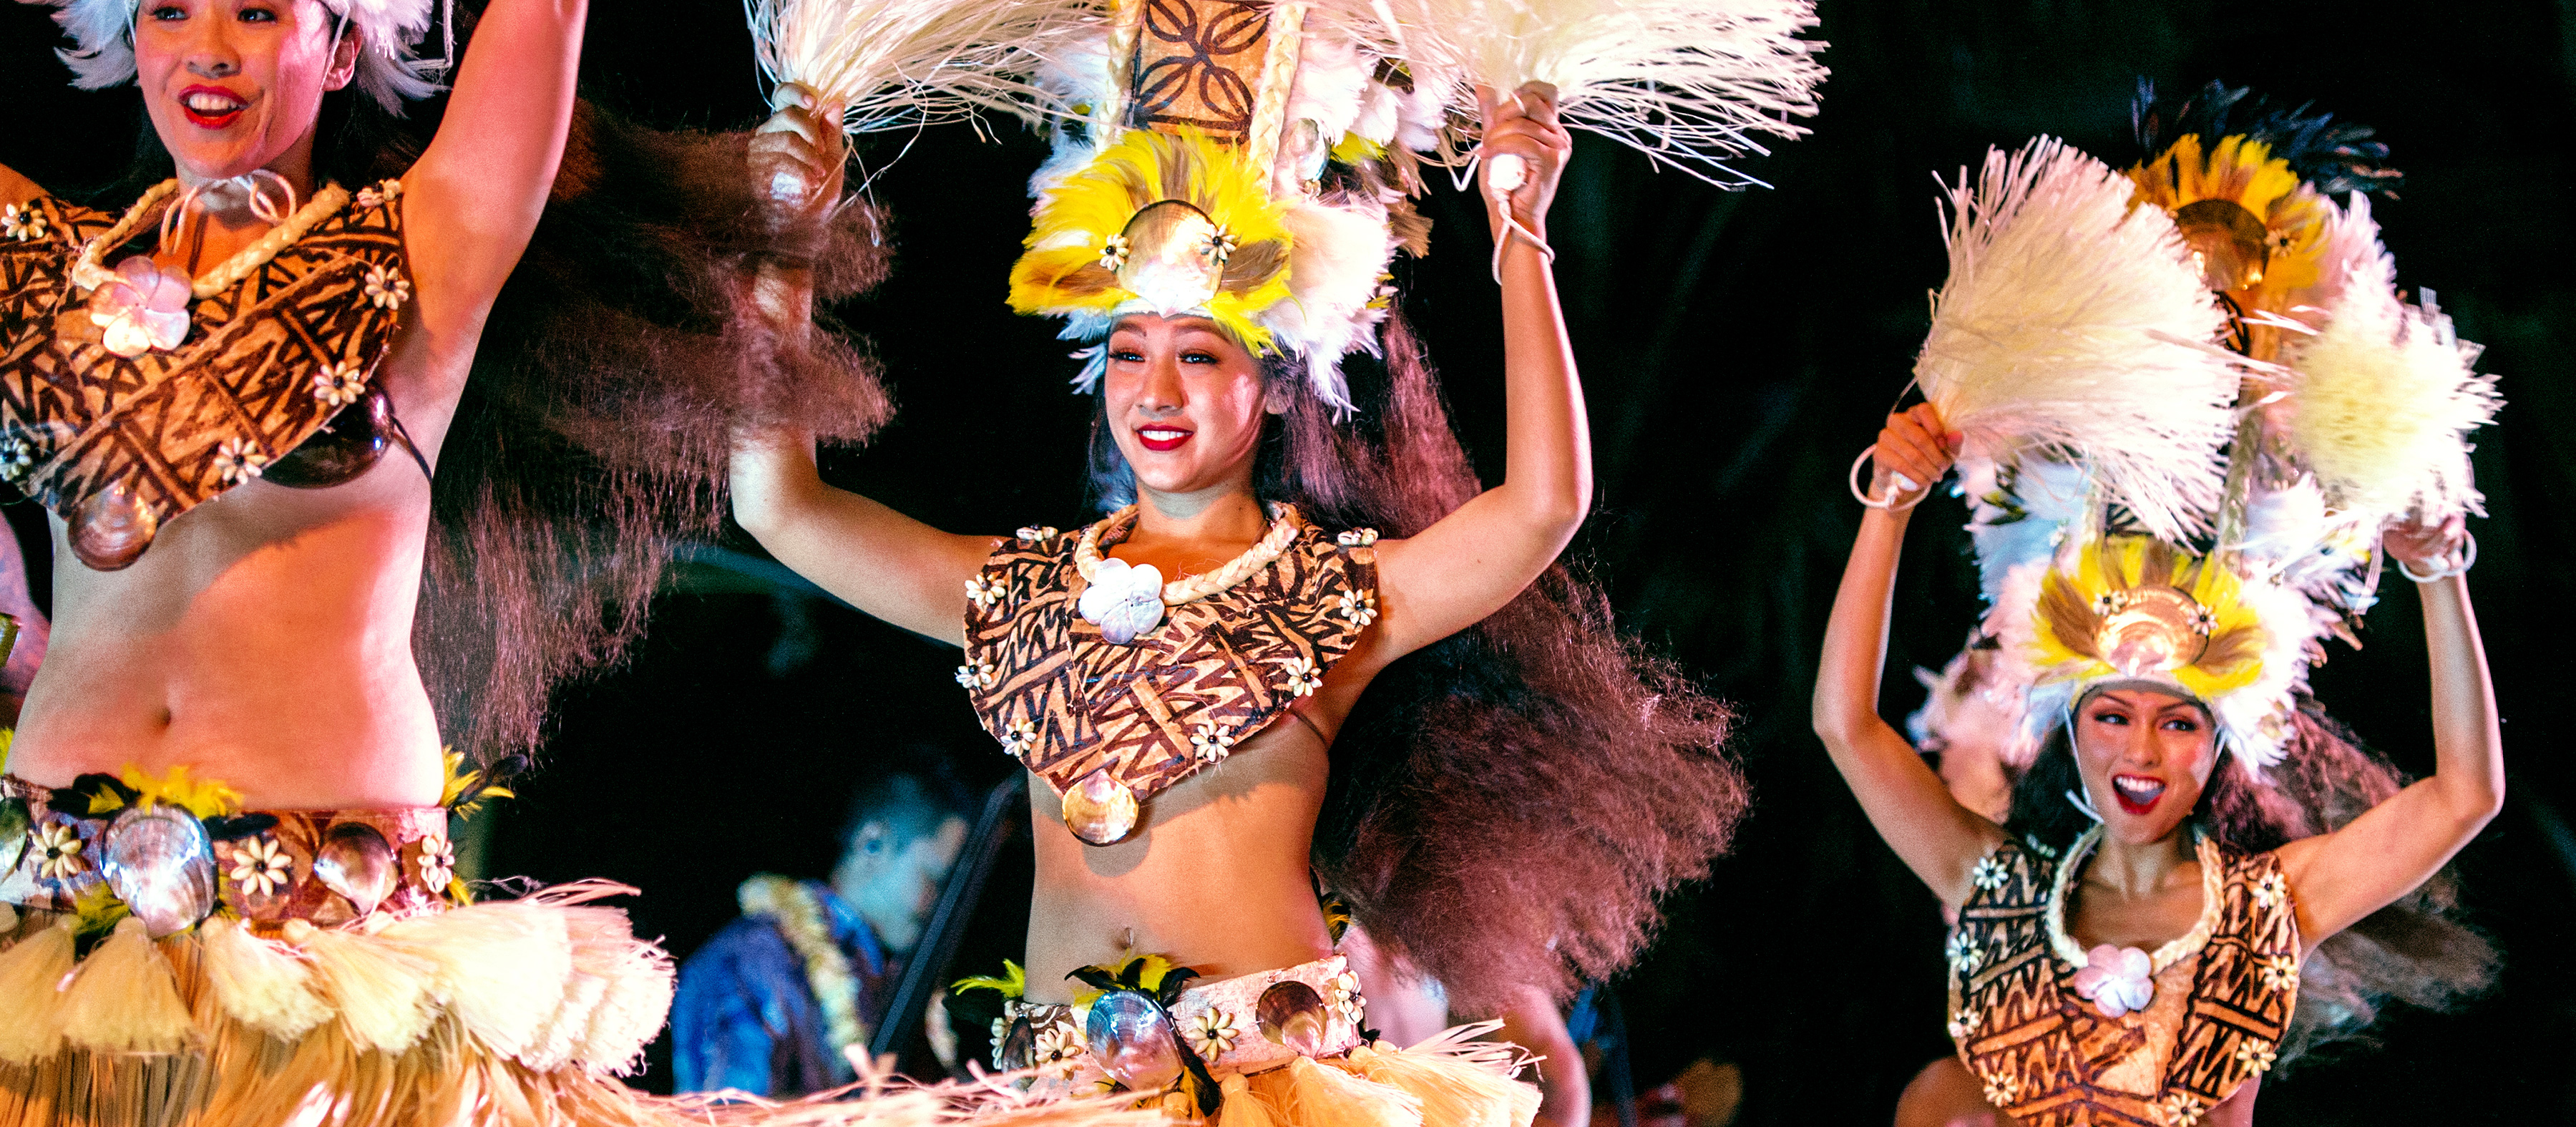 Hawaiian dancers in grass skirts and tall head dresses made of feathers, wave grassy pom-poms while performing a traditional dance at the Ka Wa'a Luau.